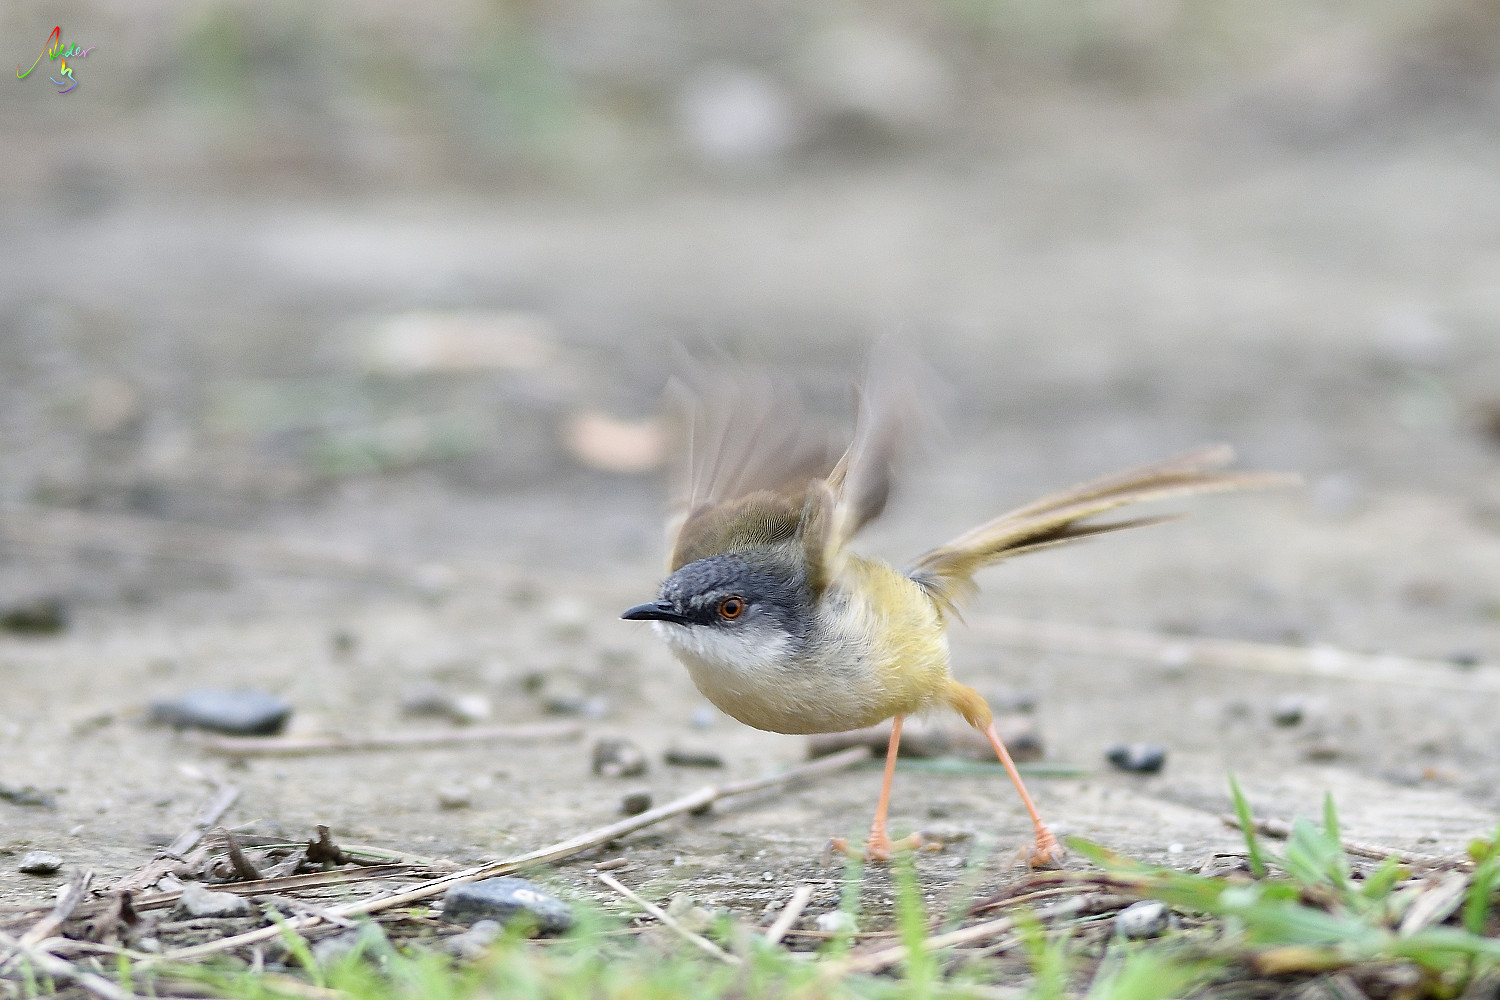 Yellow-bellied_Prinia_3485